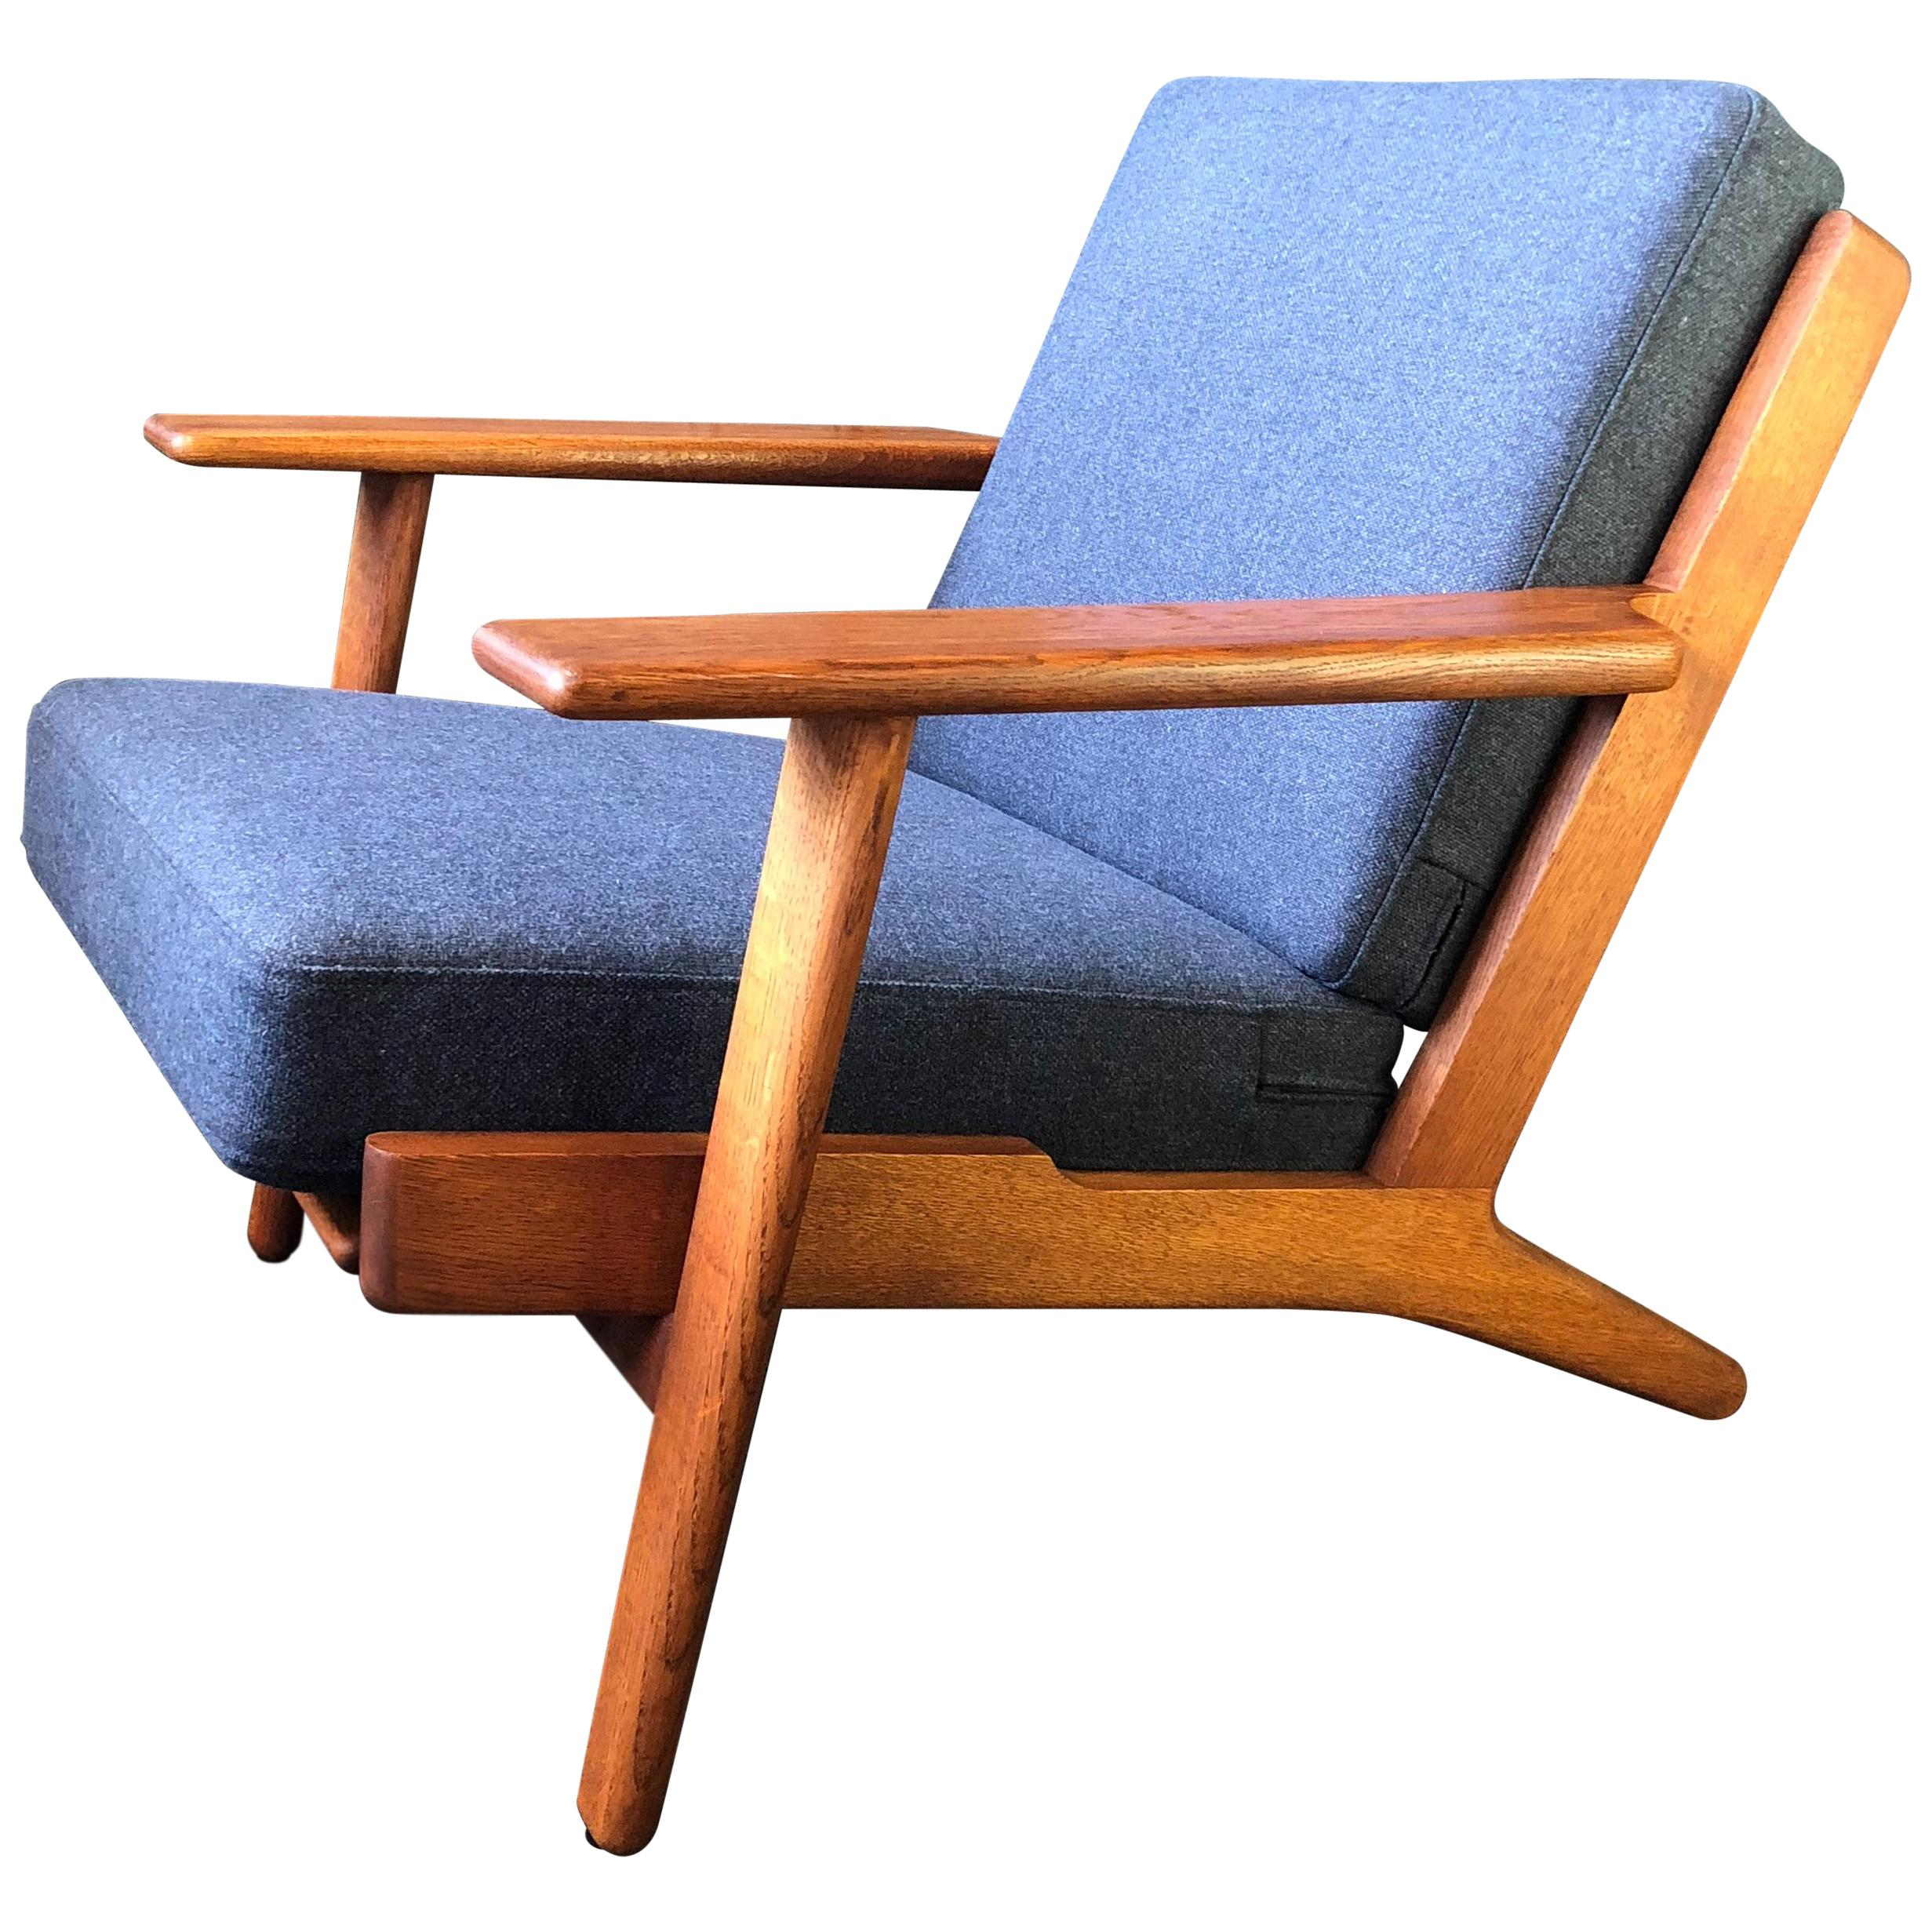 Hans Wegner Armchair, Ge290, 1950s, Fully Refurbished And Reupholstered